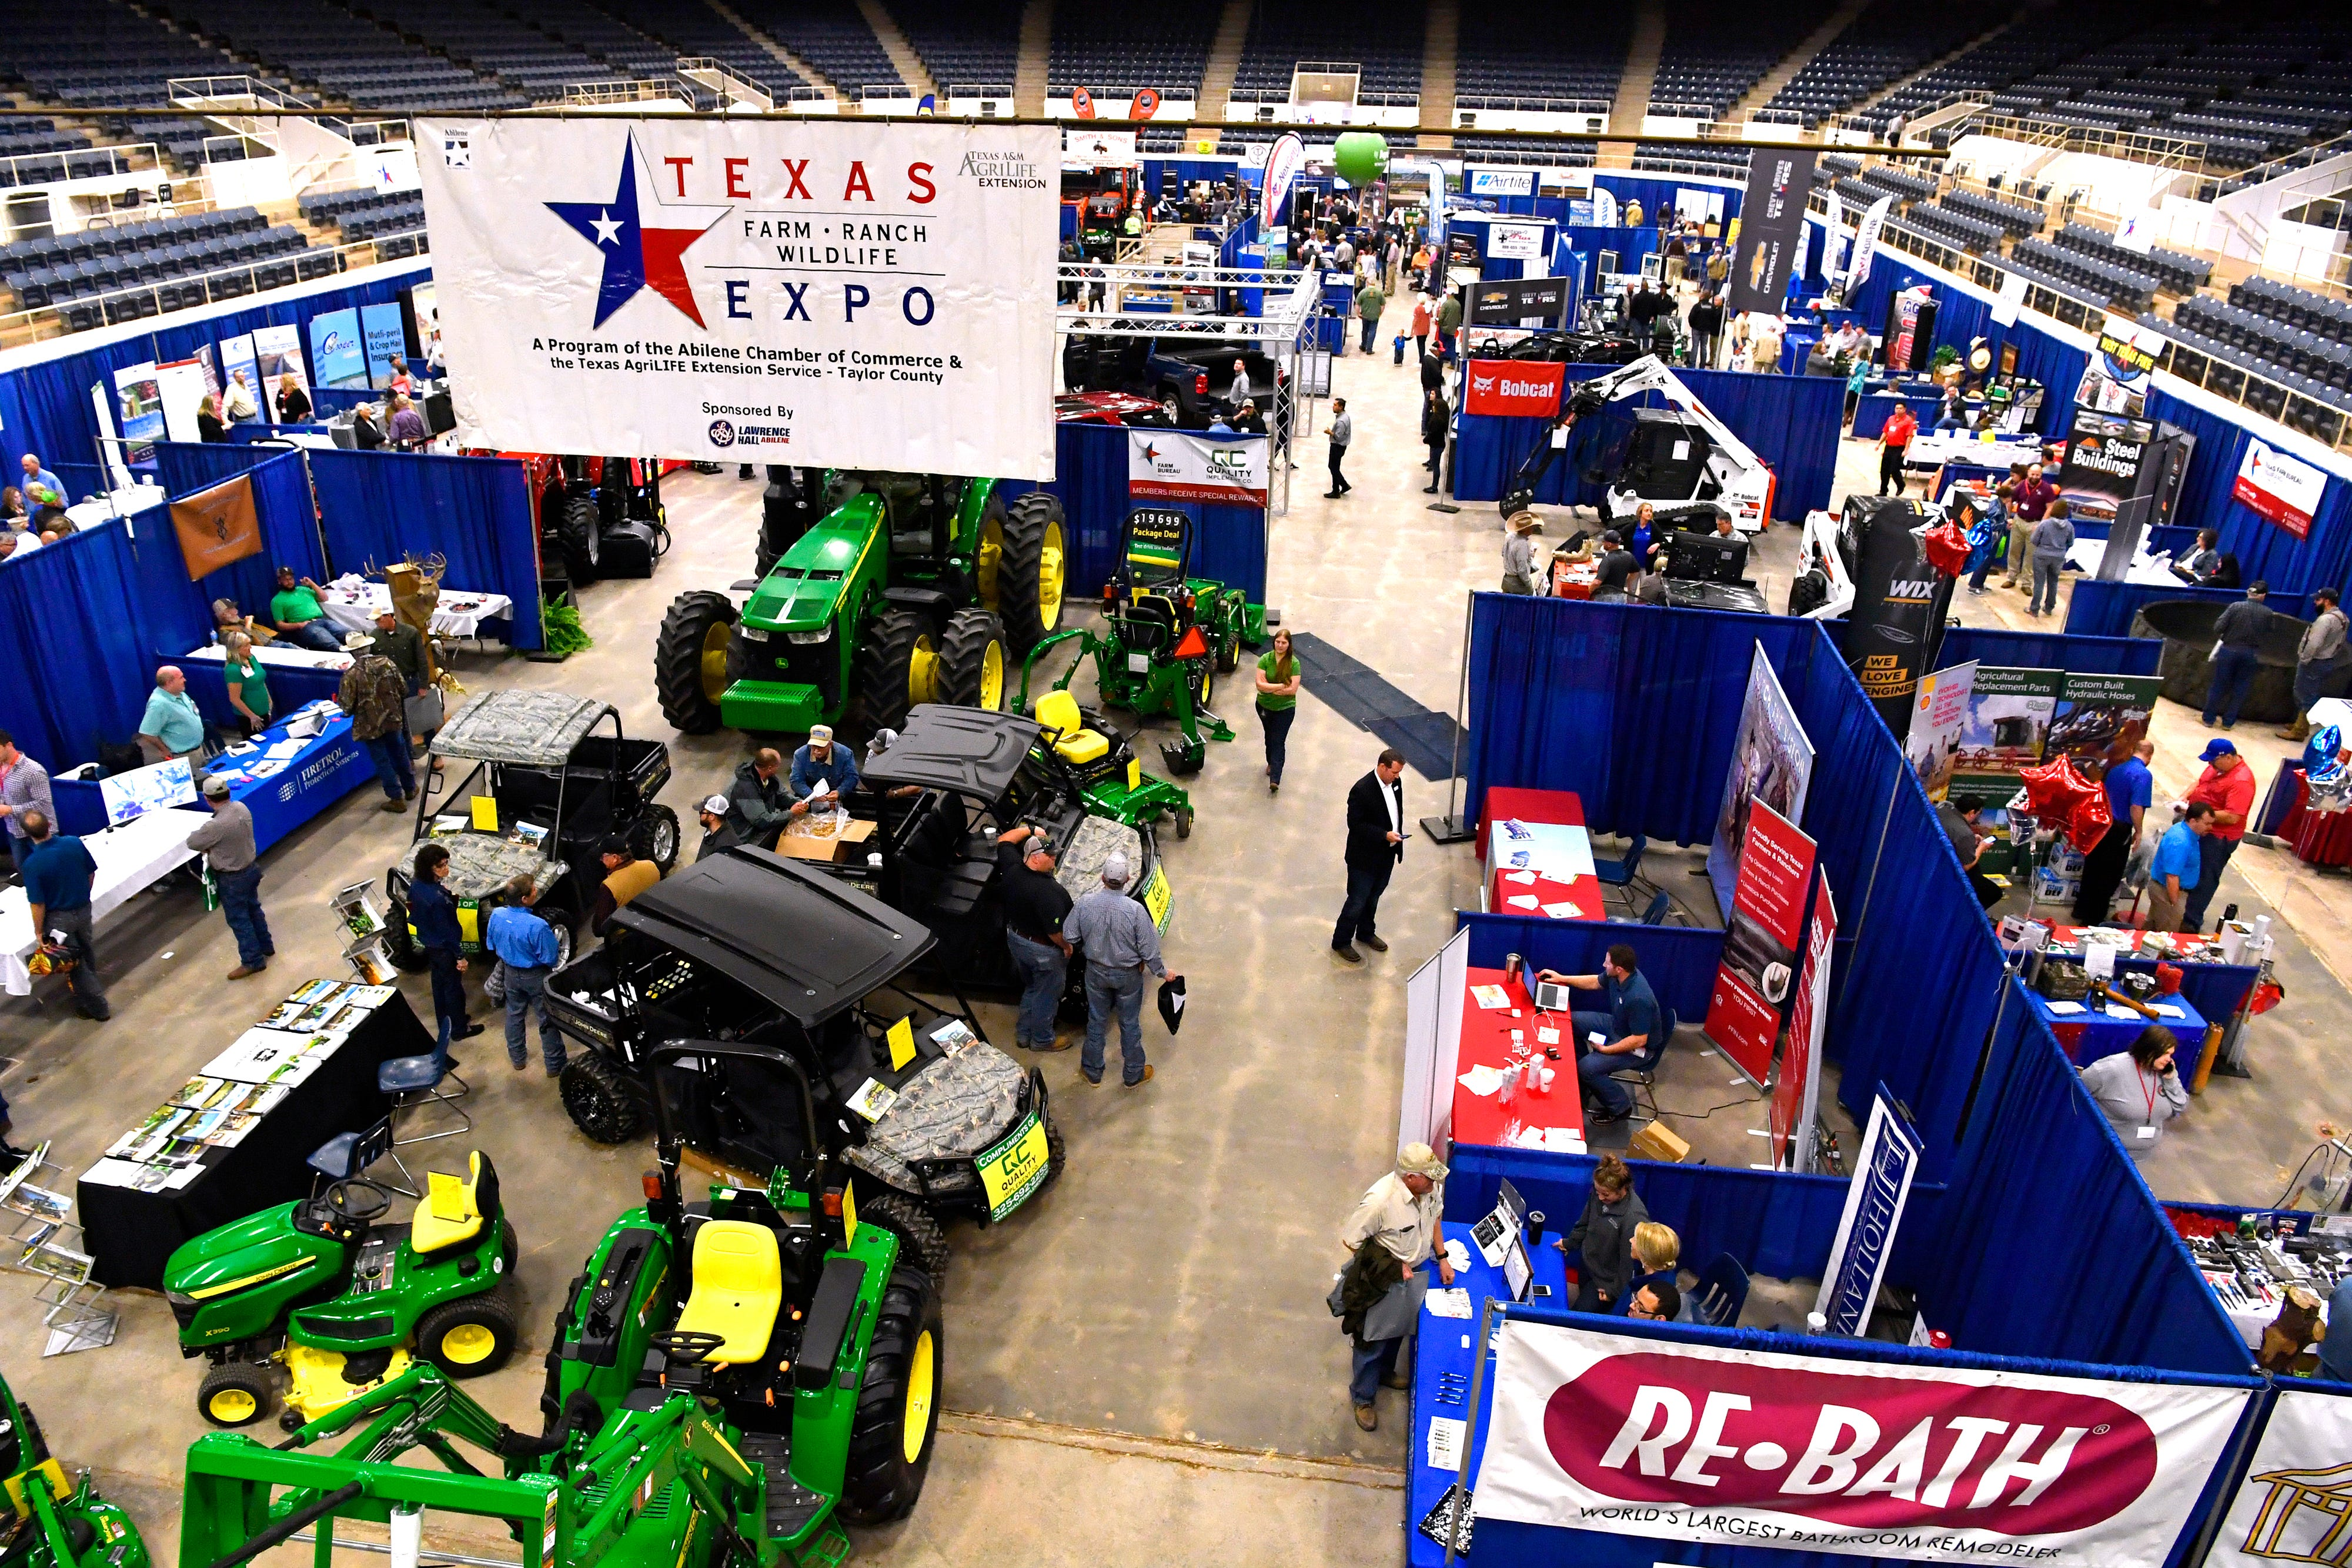 The Texas Farm & Ranch Wildlife Expo, Feb. 20, 2018, at the Taylor County Coliseum.